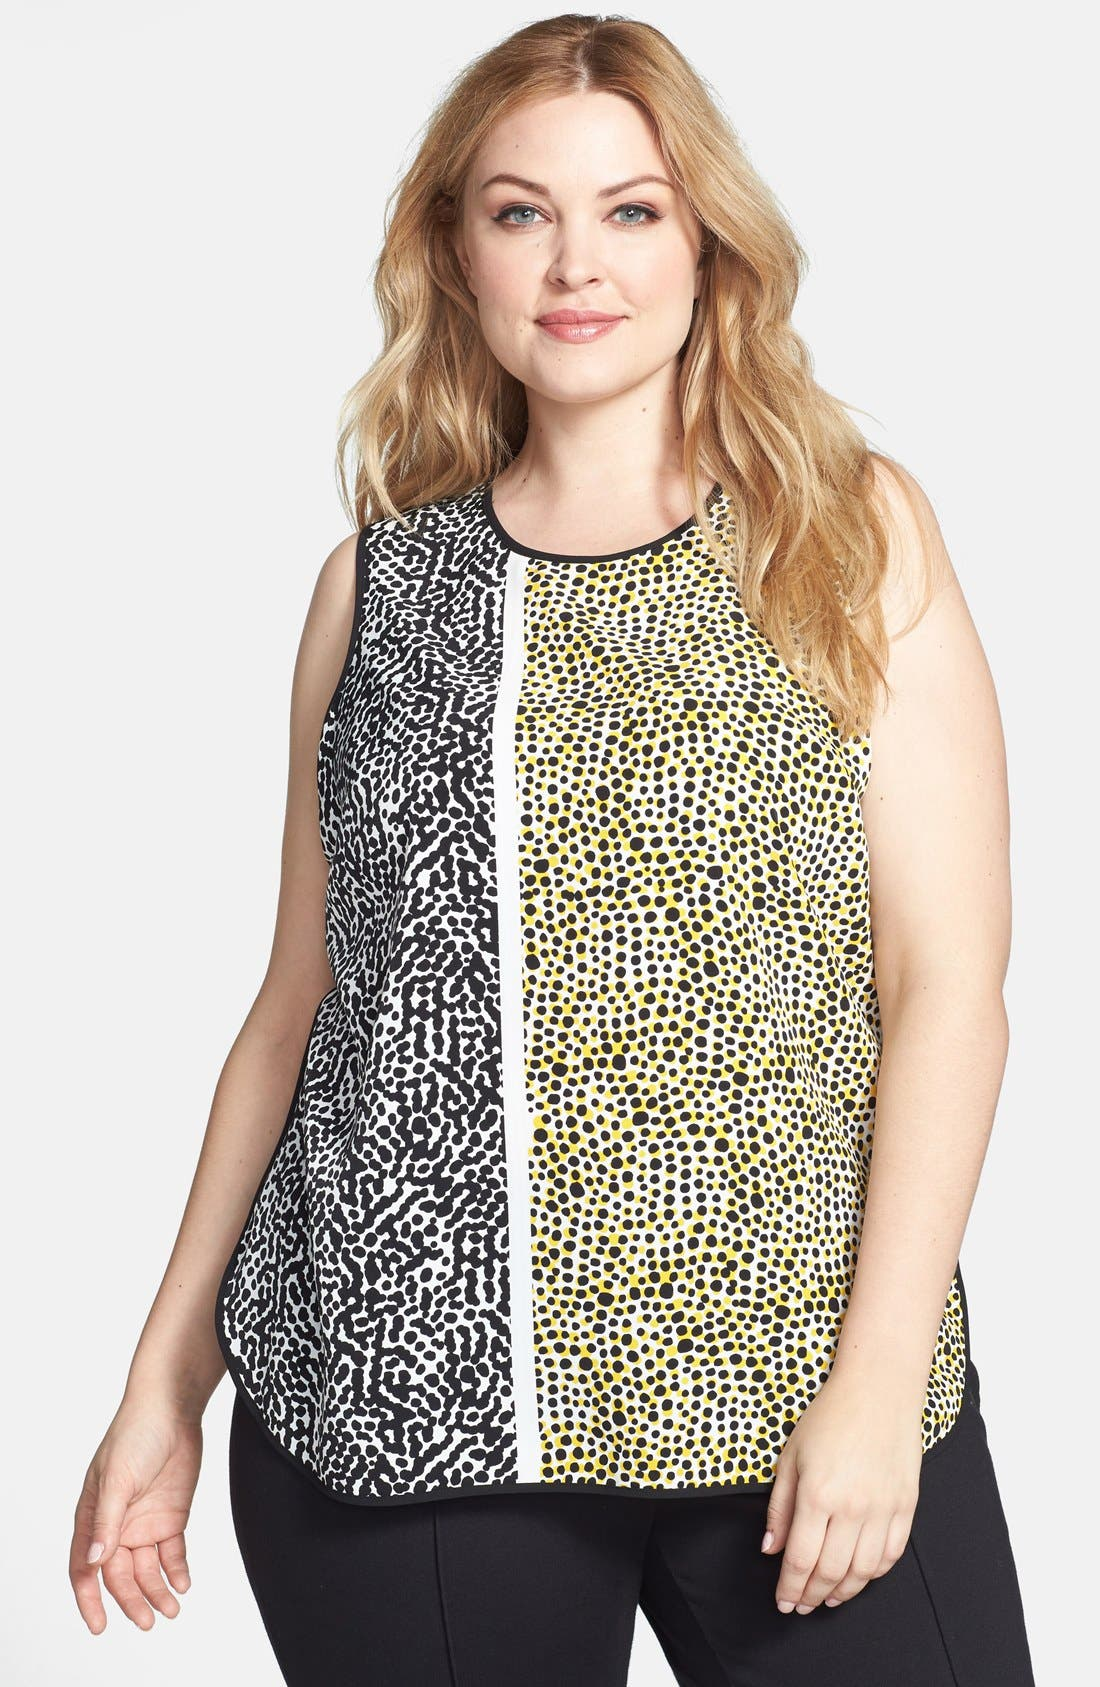 Alternate Image 1 Selected - Vince Camuto Print Sleeveless Blouse (Plus Size)